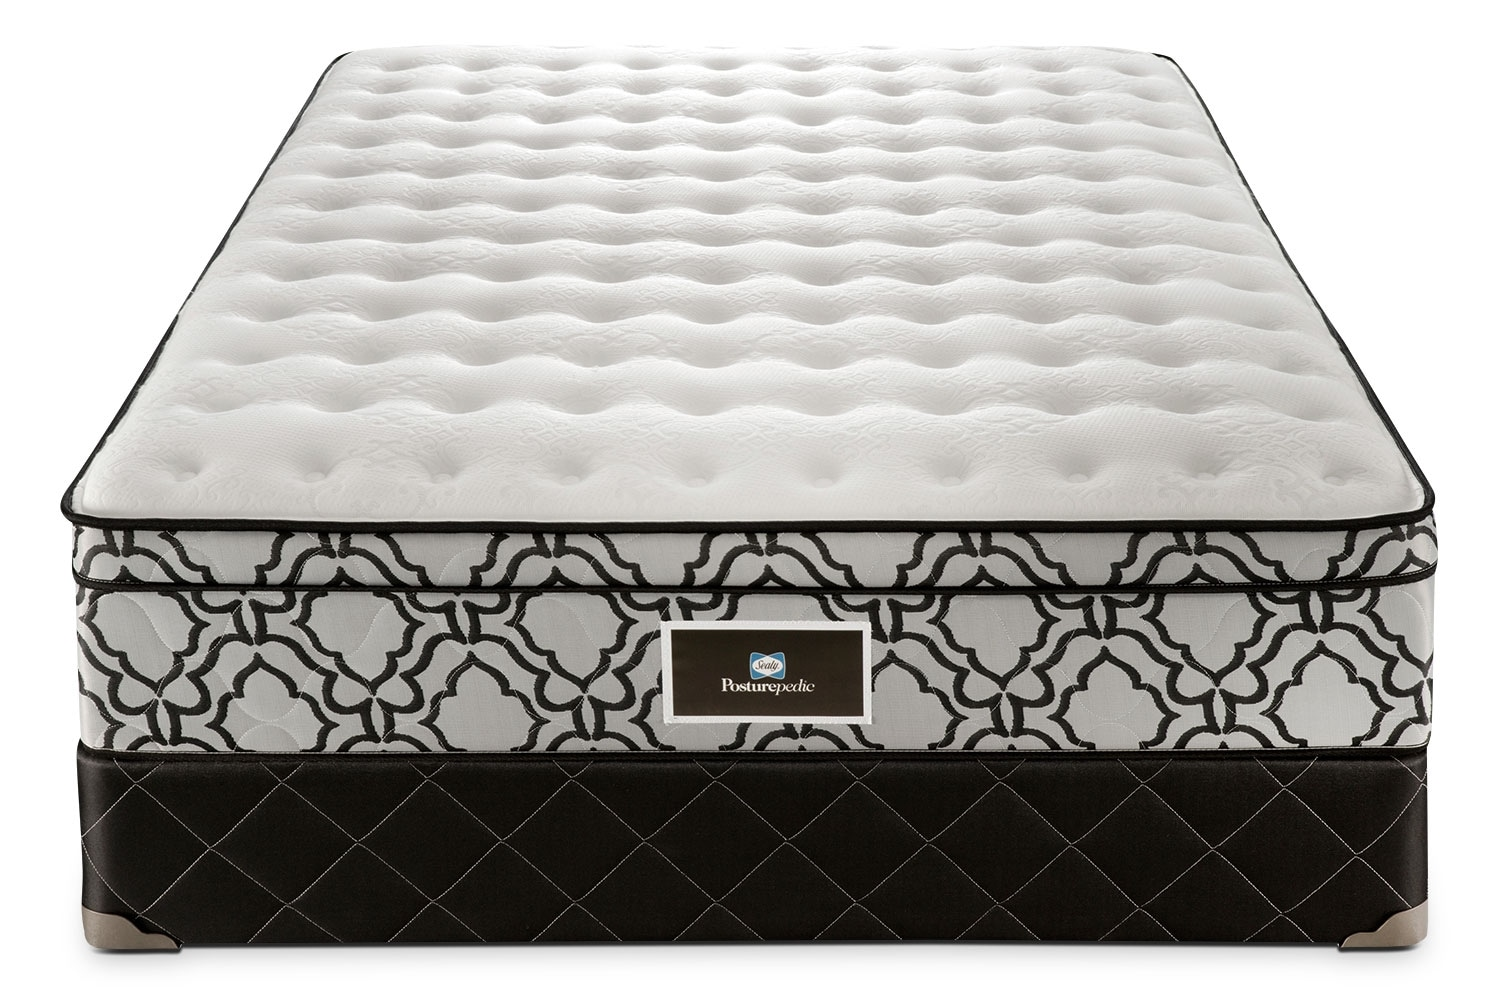 Low Profile Innerspring Mattress Sealy Theodore Firm Queen Mattress And Low Profile Split